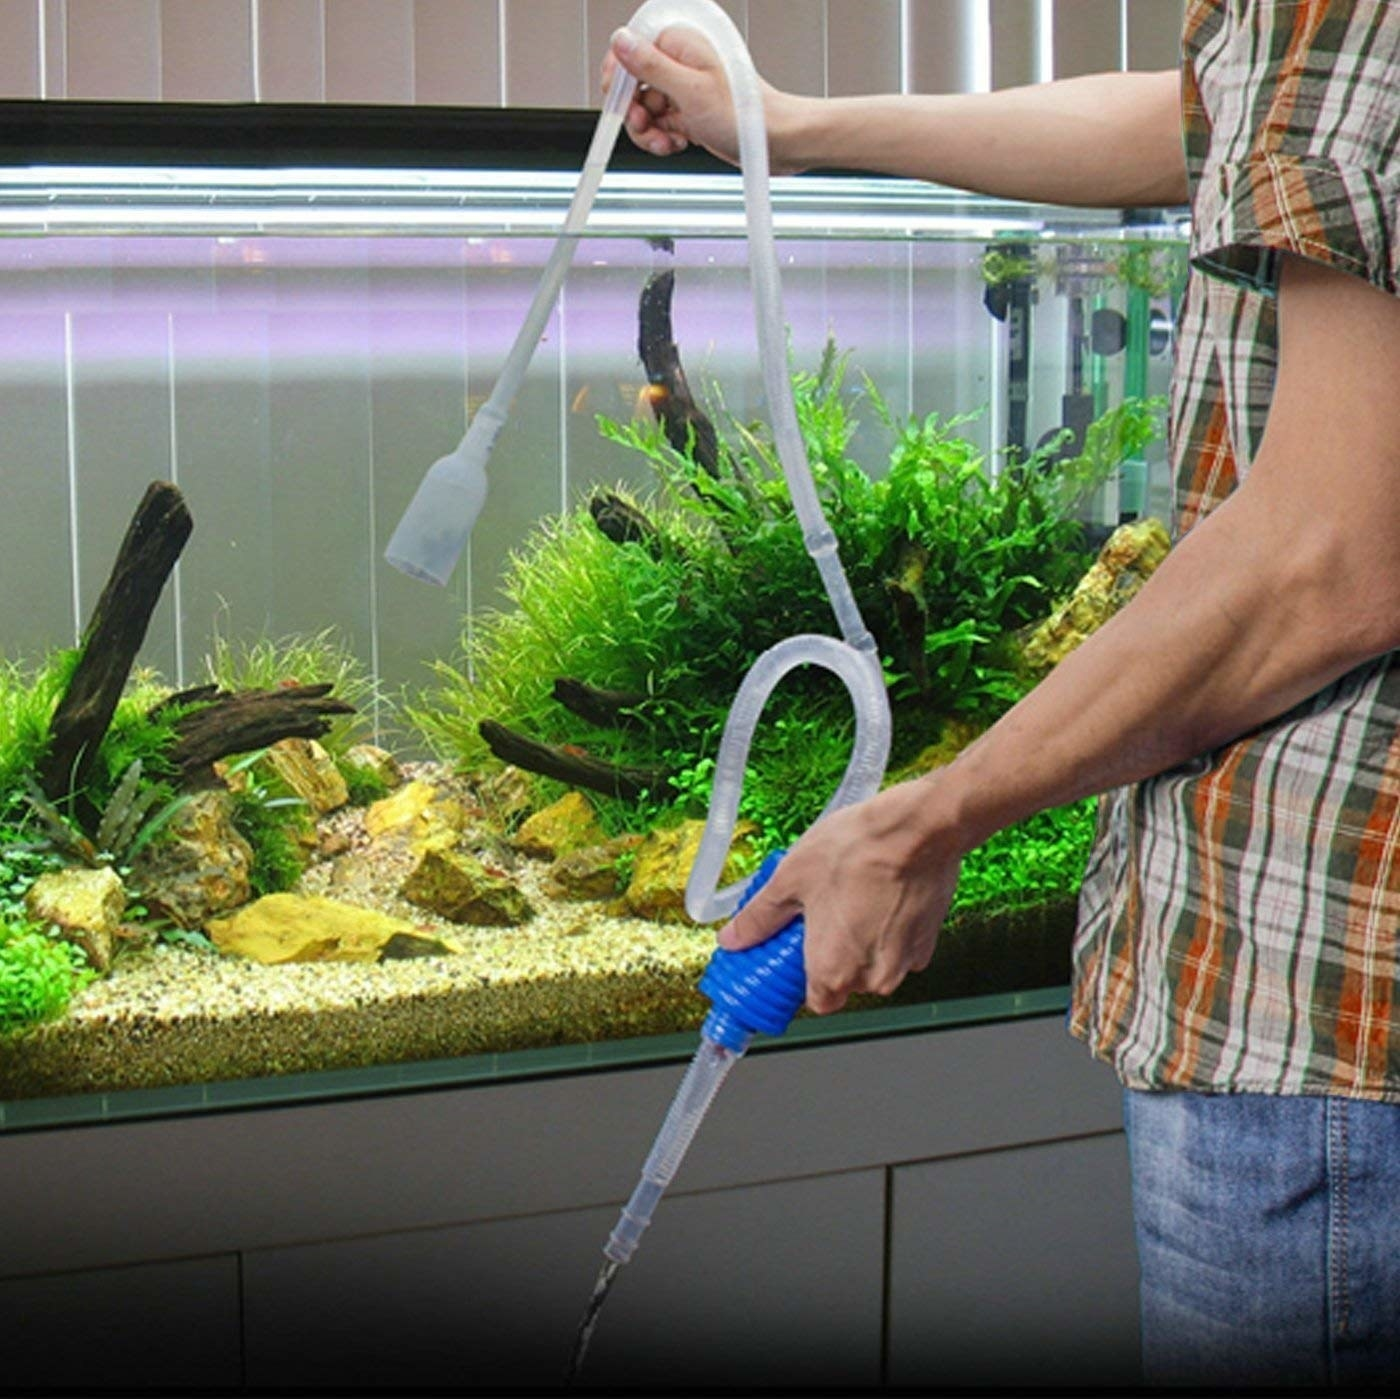 A person changing the water in the tank using the pump.